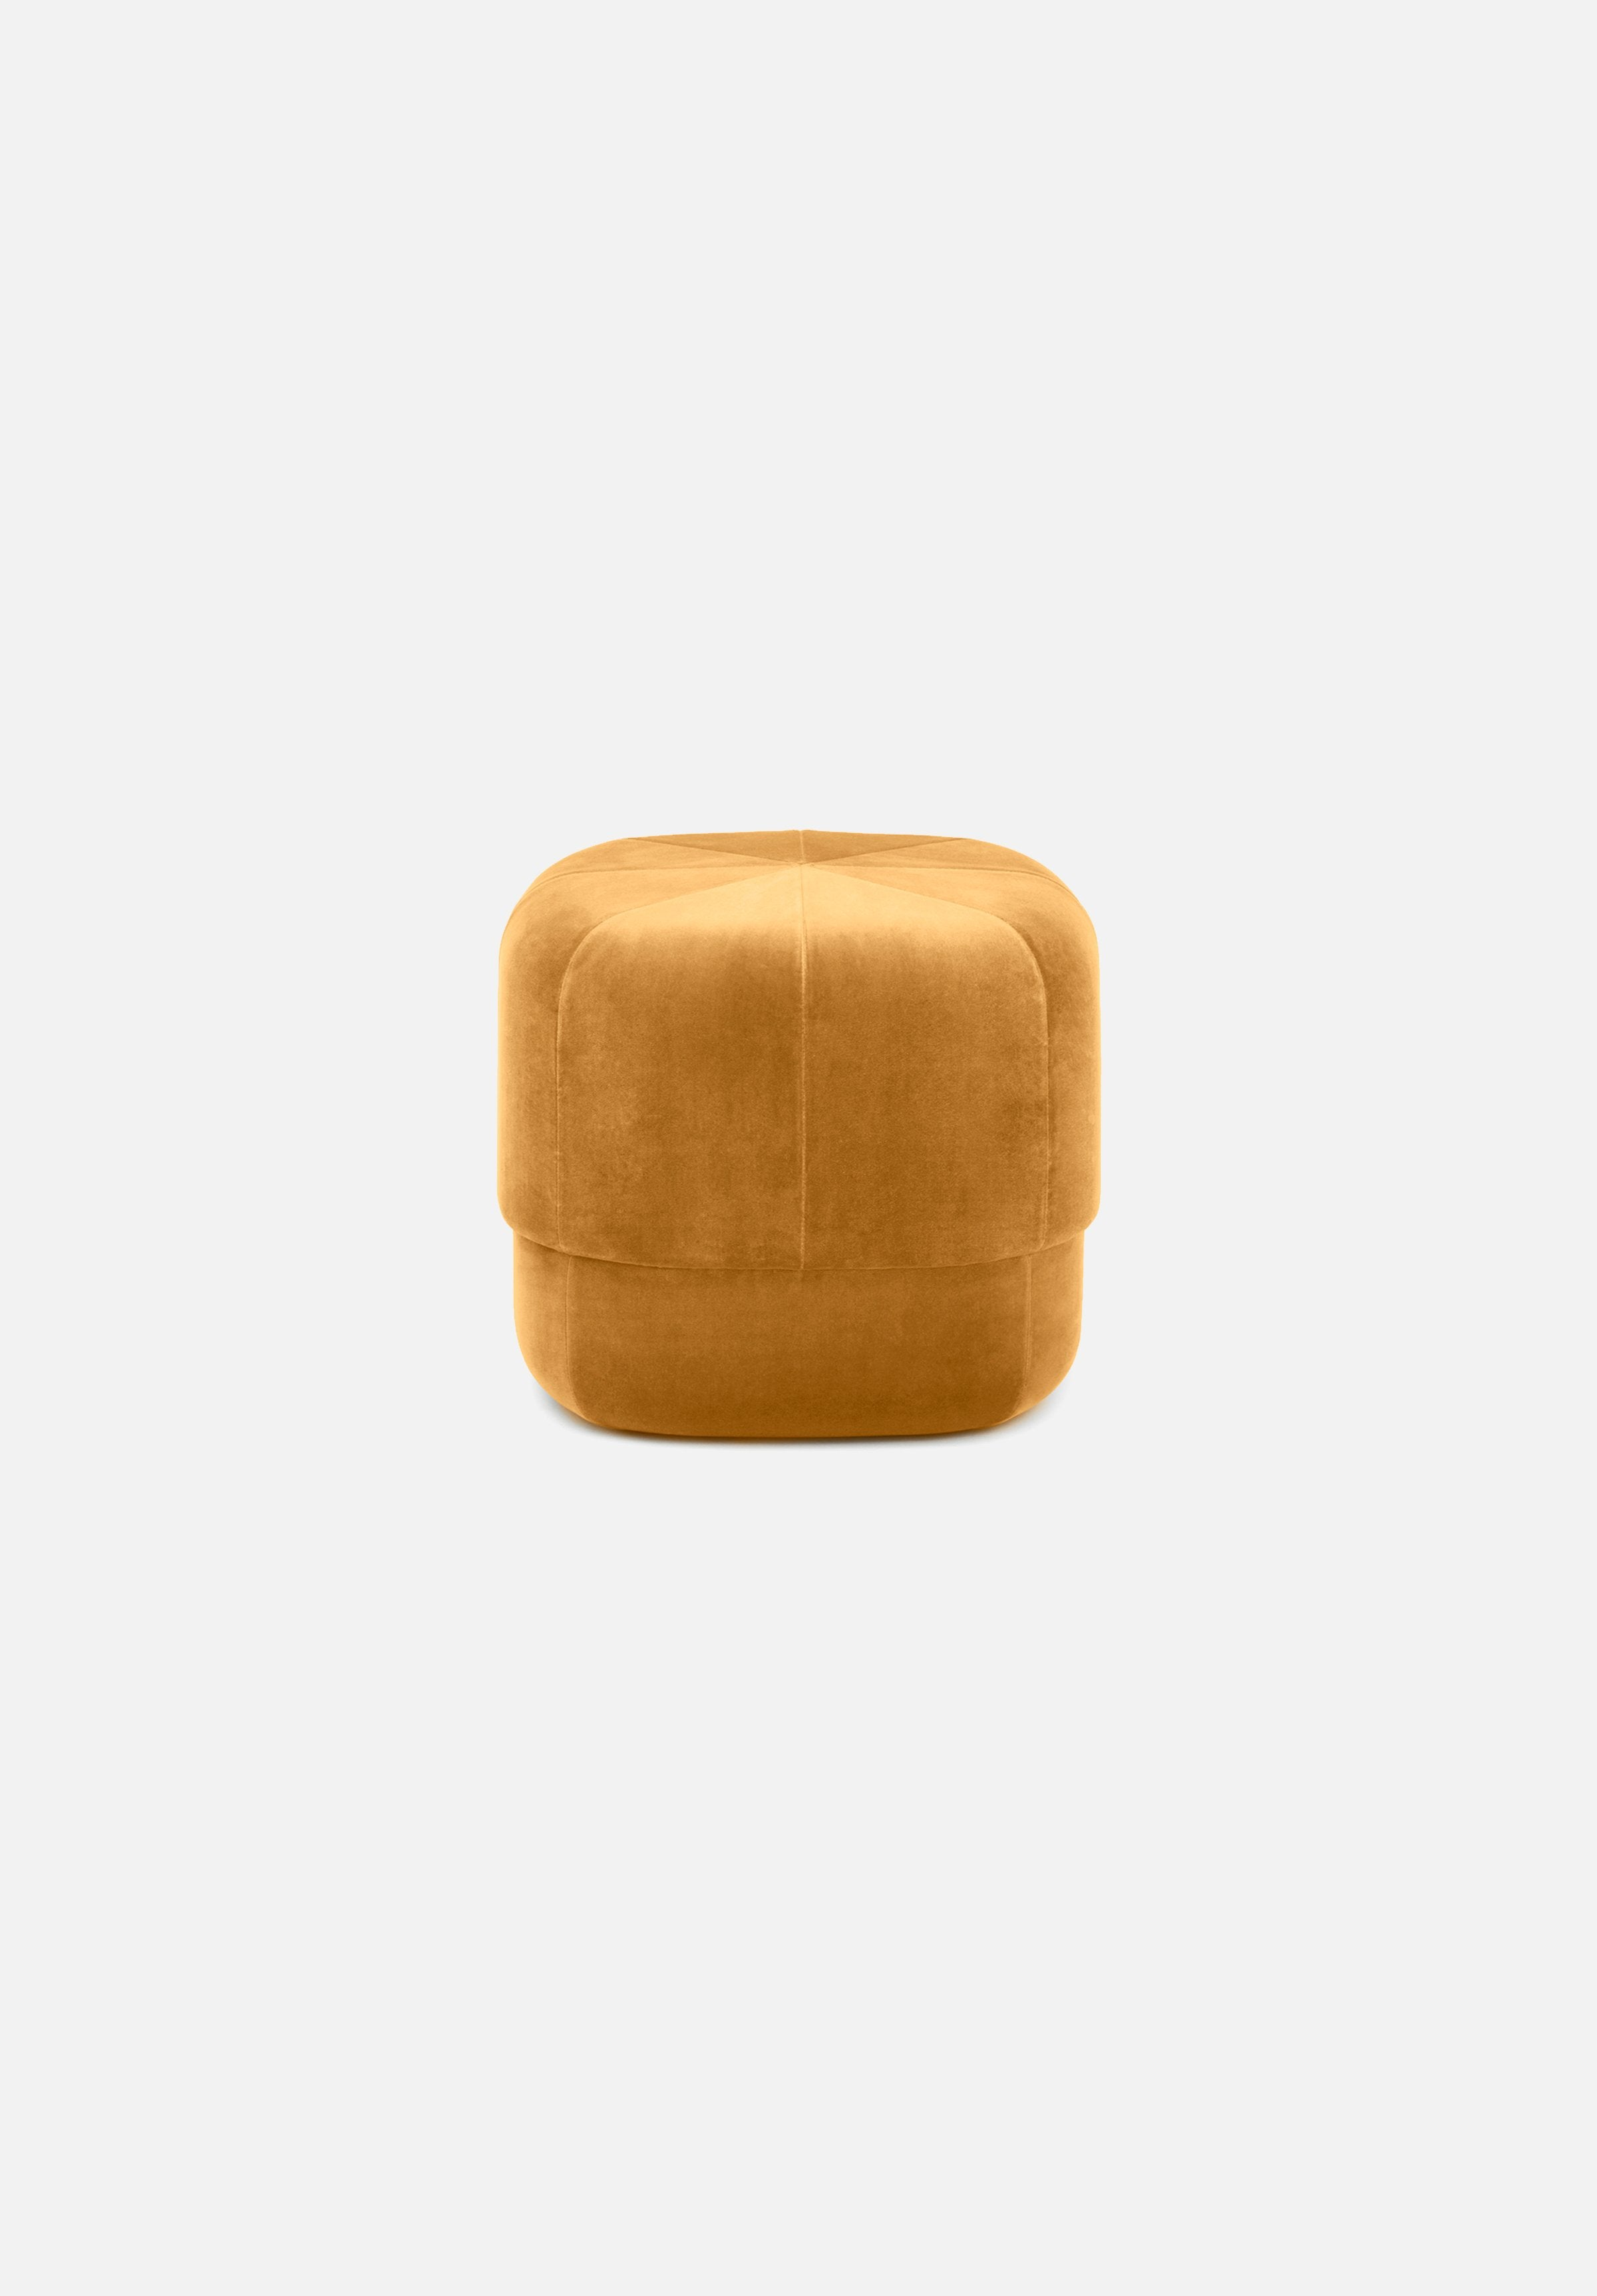 Circus Pouf — Small-Simon Legald-Normann Copenhagen-Yellow-Average